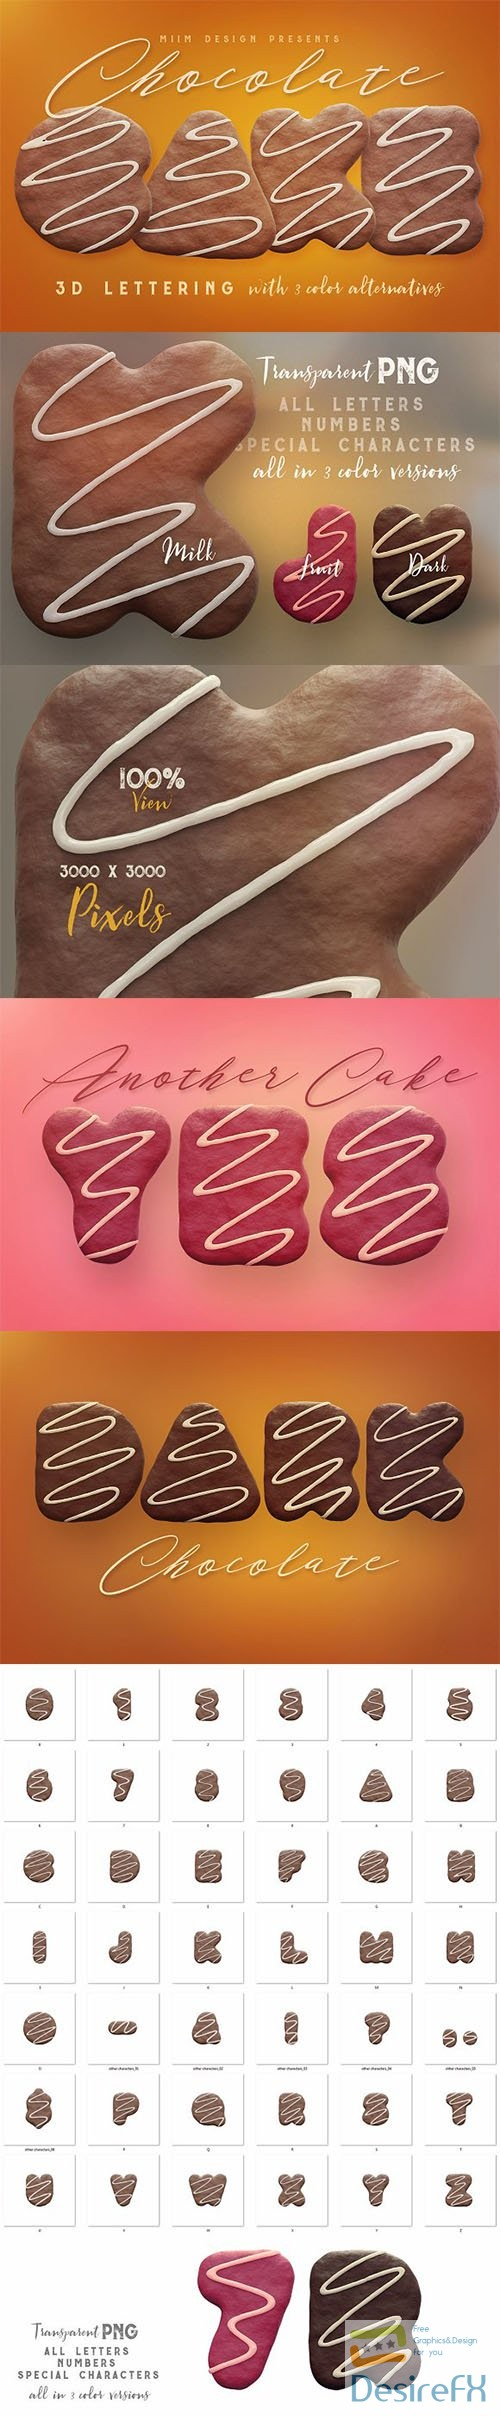 photoshop - Chocolate Cake - 3D Lettering 2749554